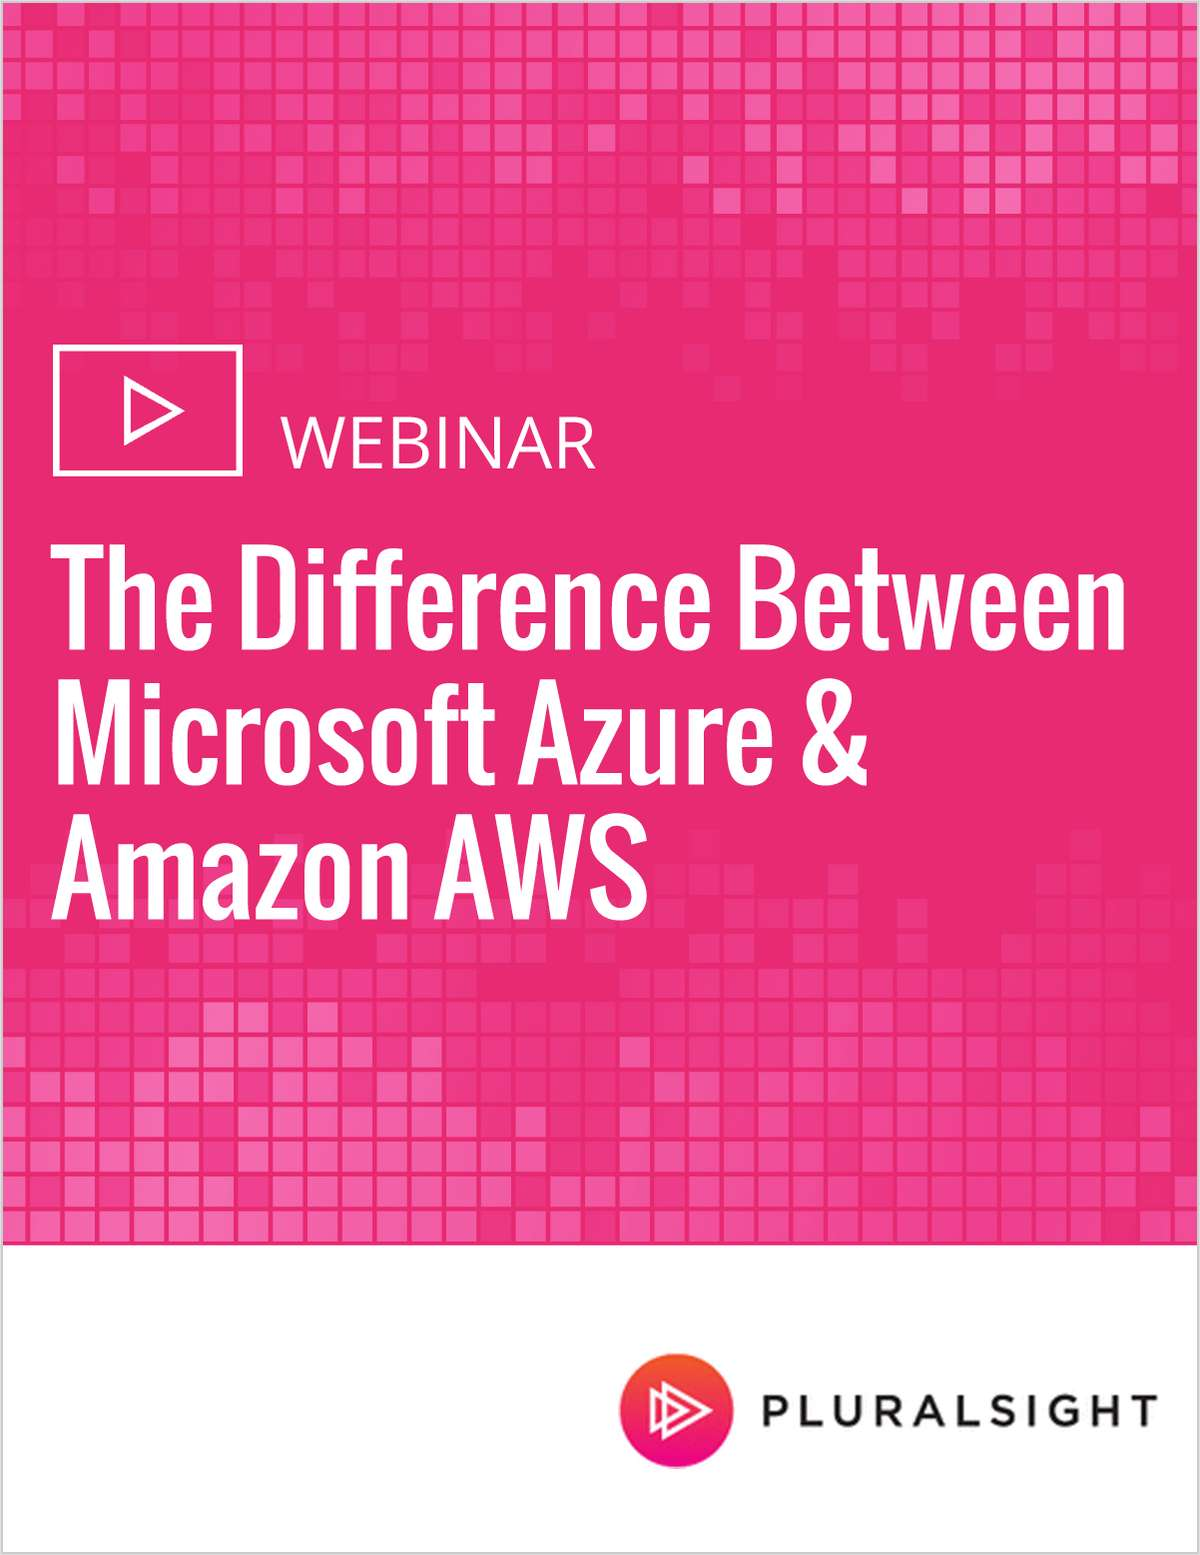 The Difference Between Microsoft Azure & Amazon AWS